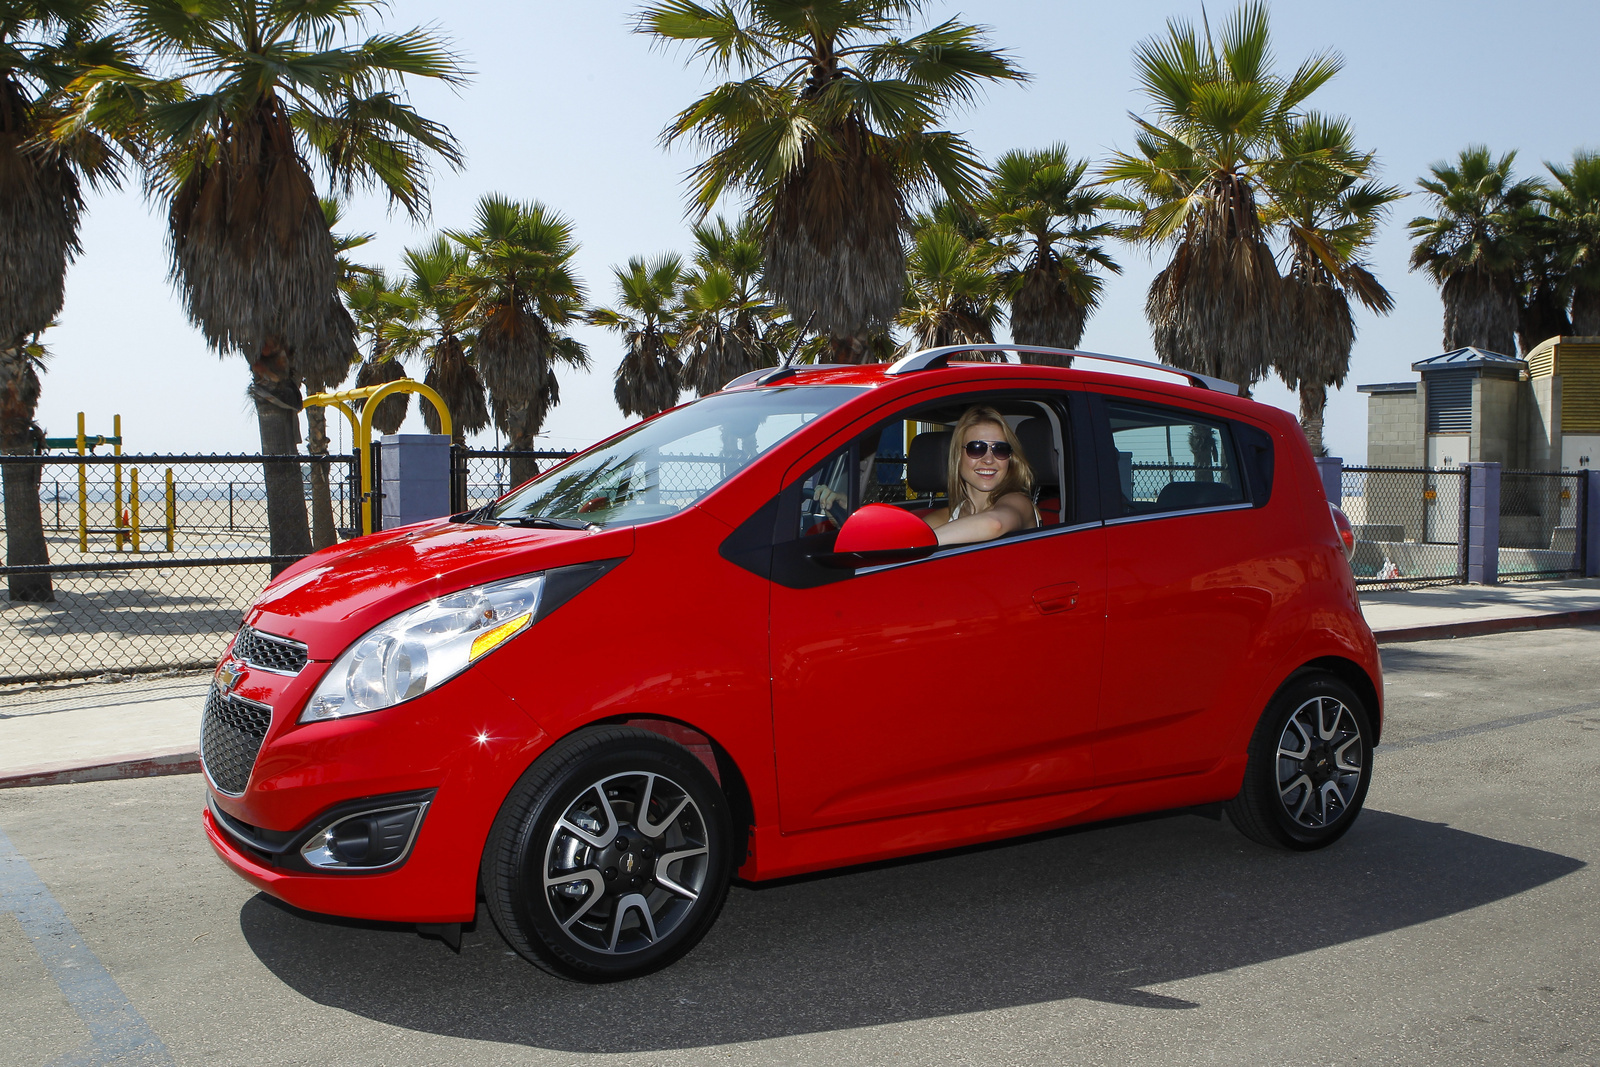 Used 2014 Chevrolet Spark For Sale With Photos Cargurus